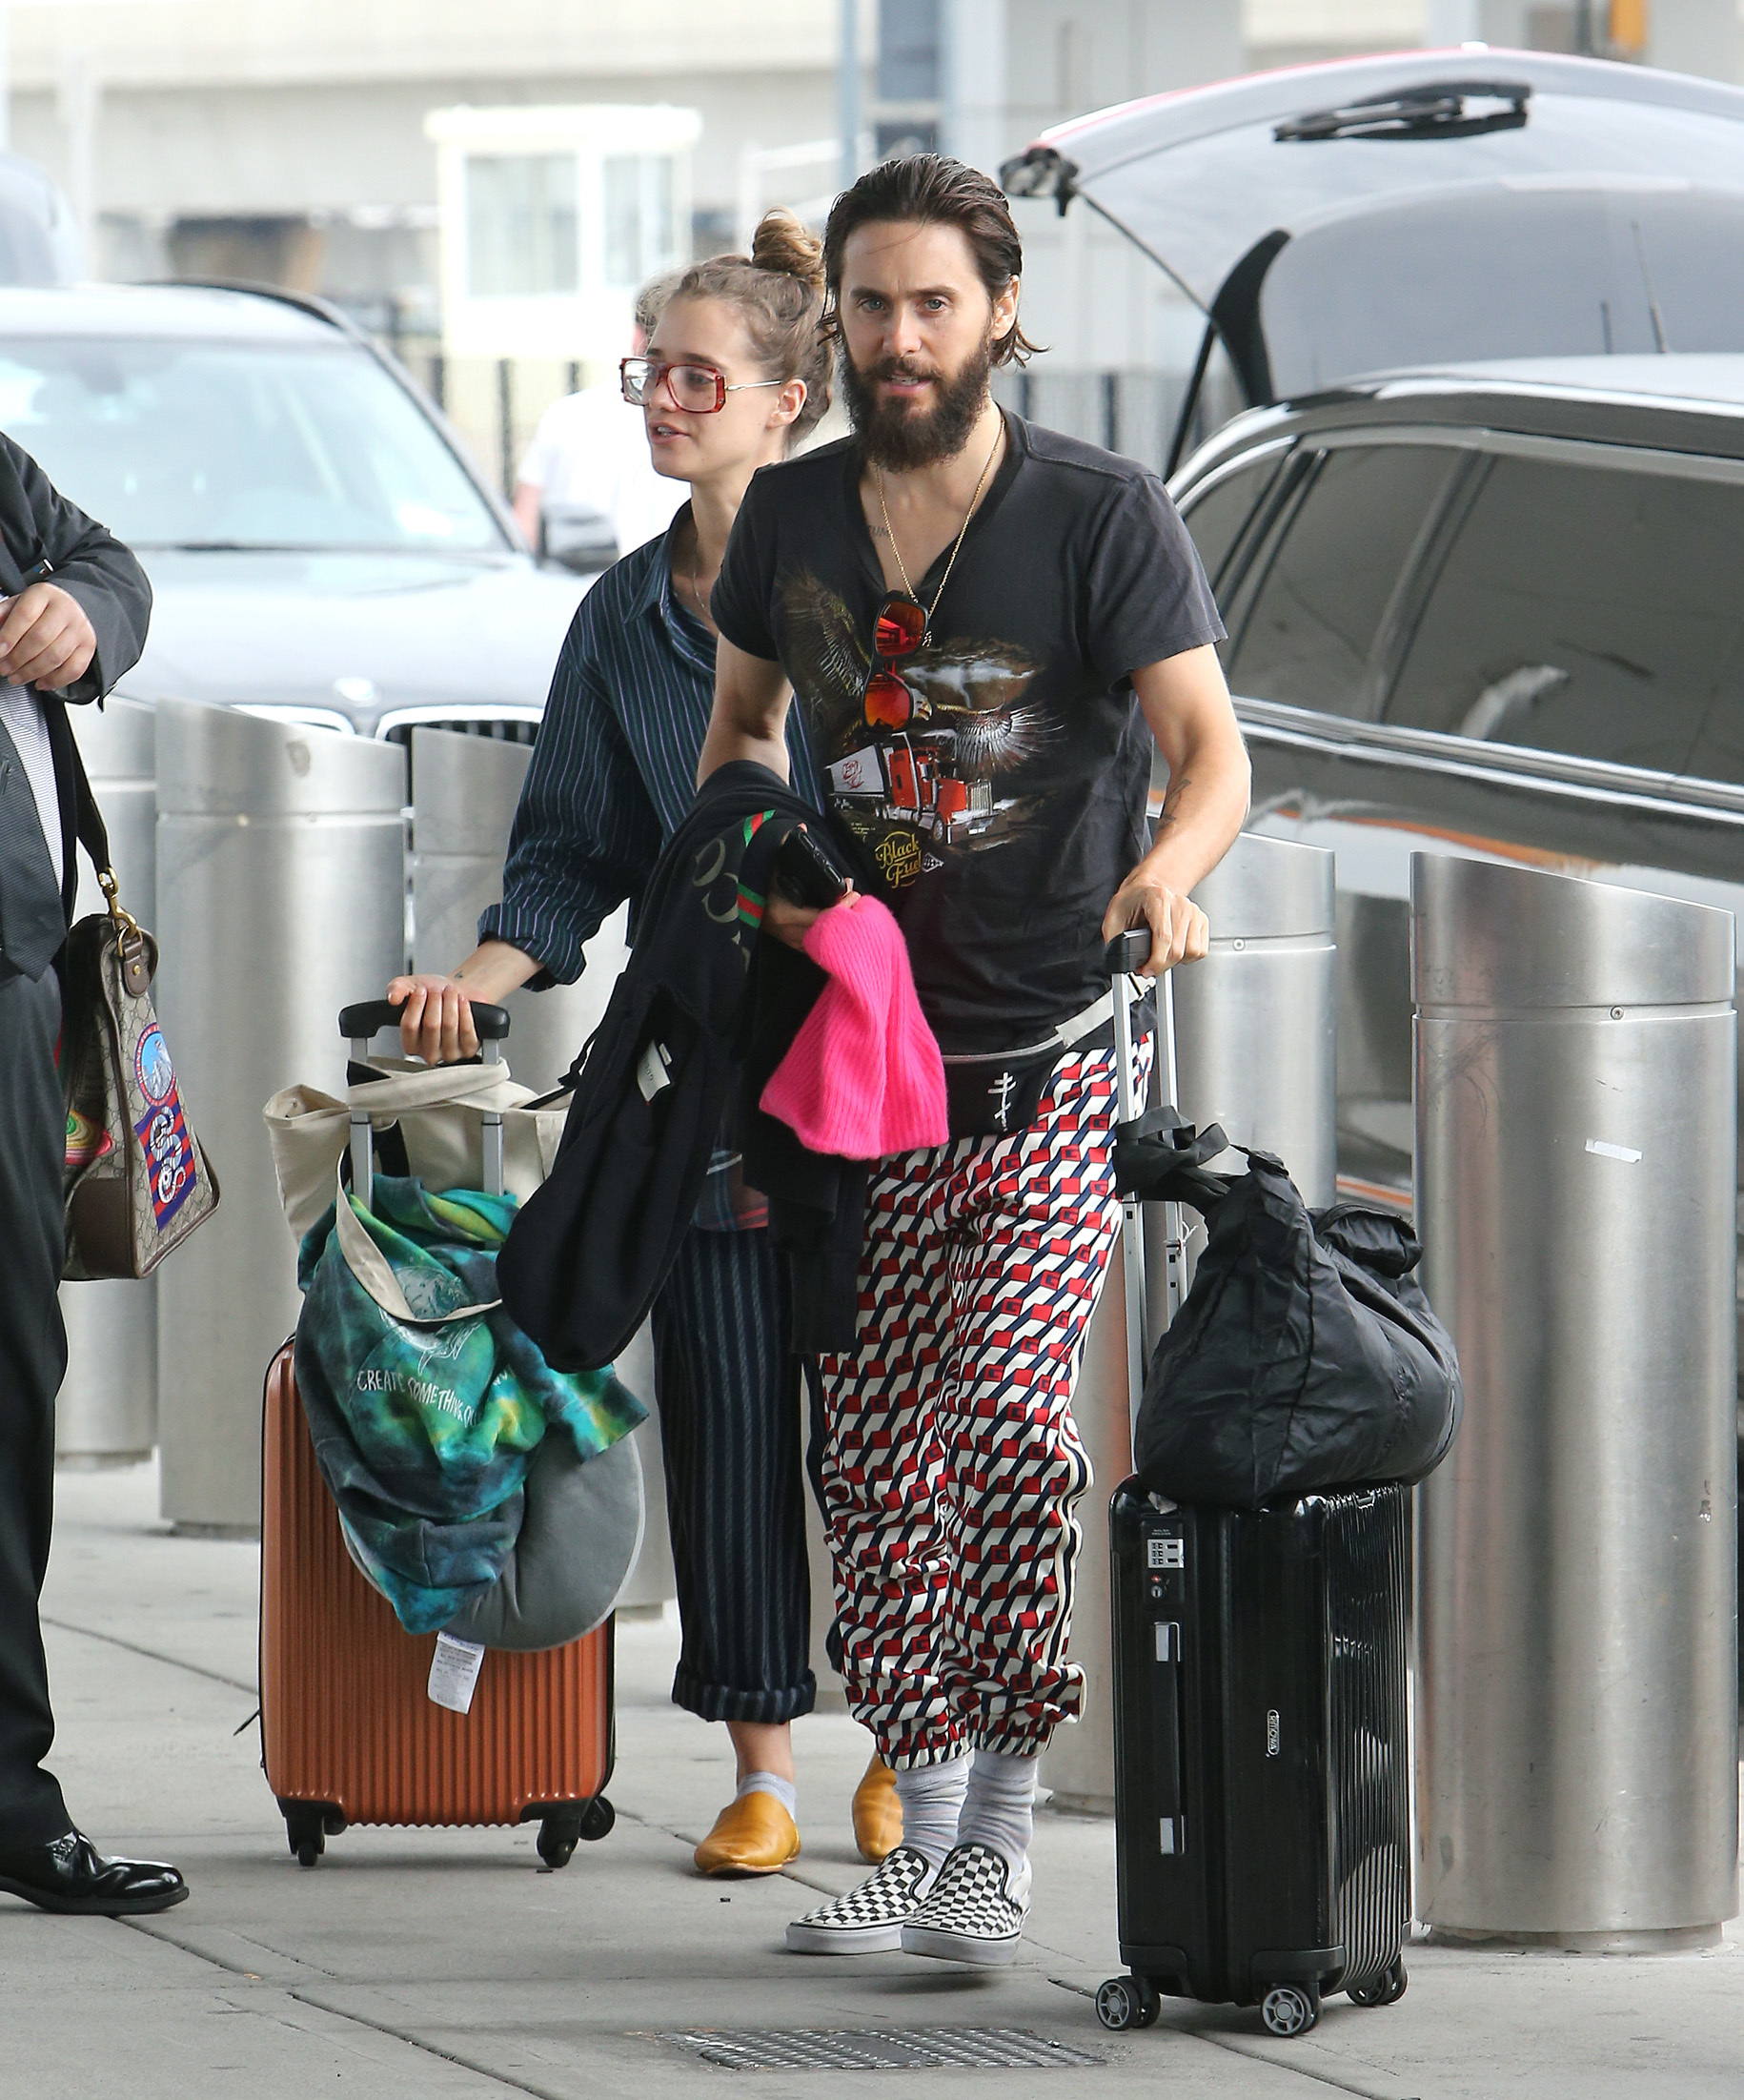 Jared Leto and a mystery girl were seen arriving at JFK airport in New York City on July 24, 2017.